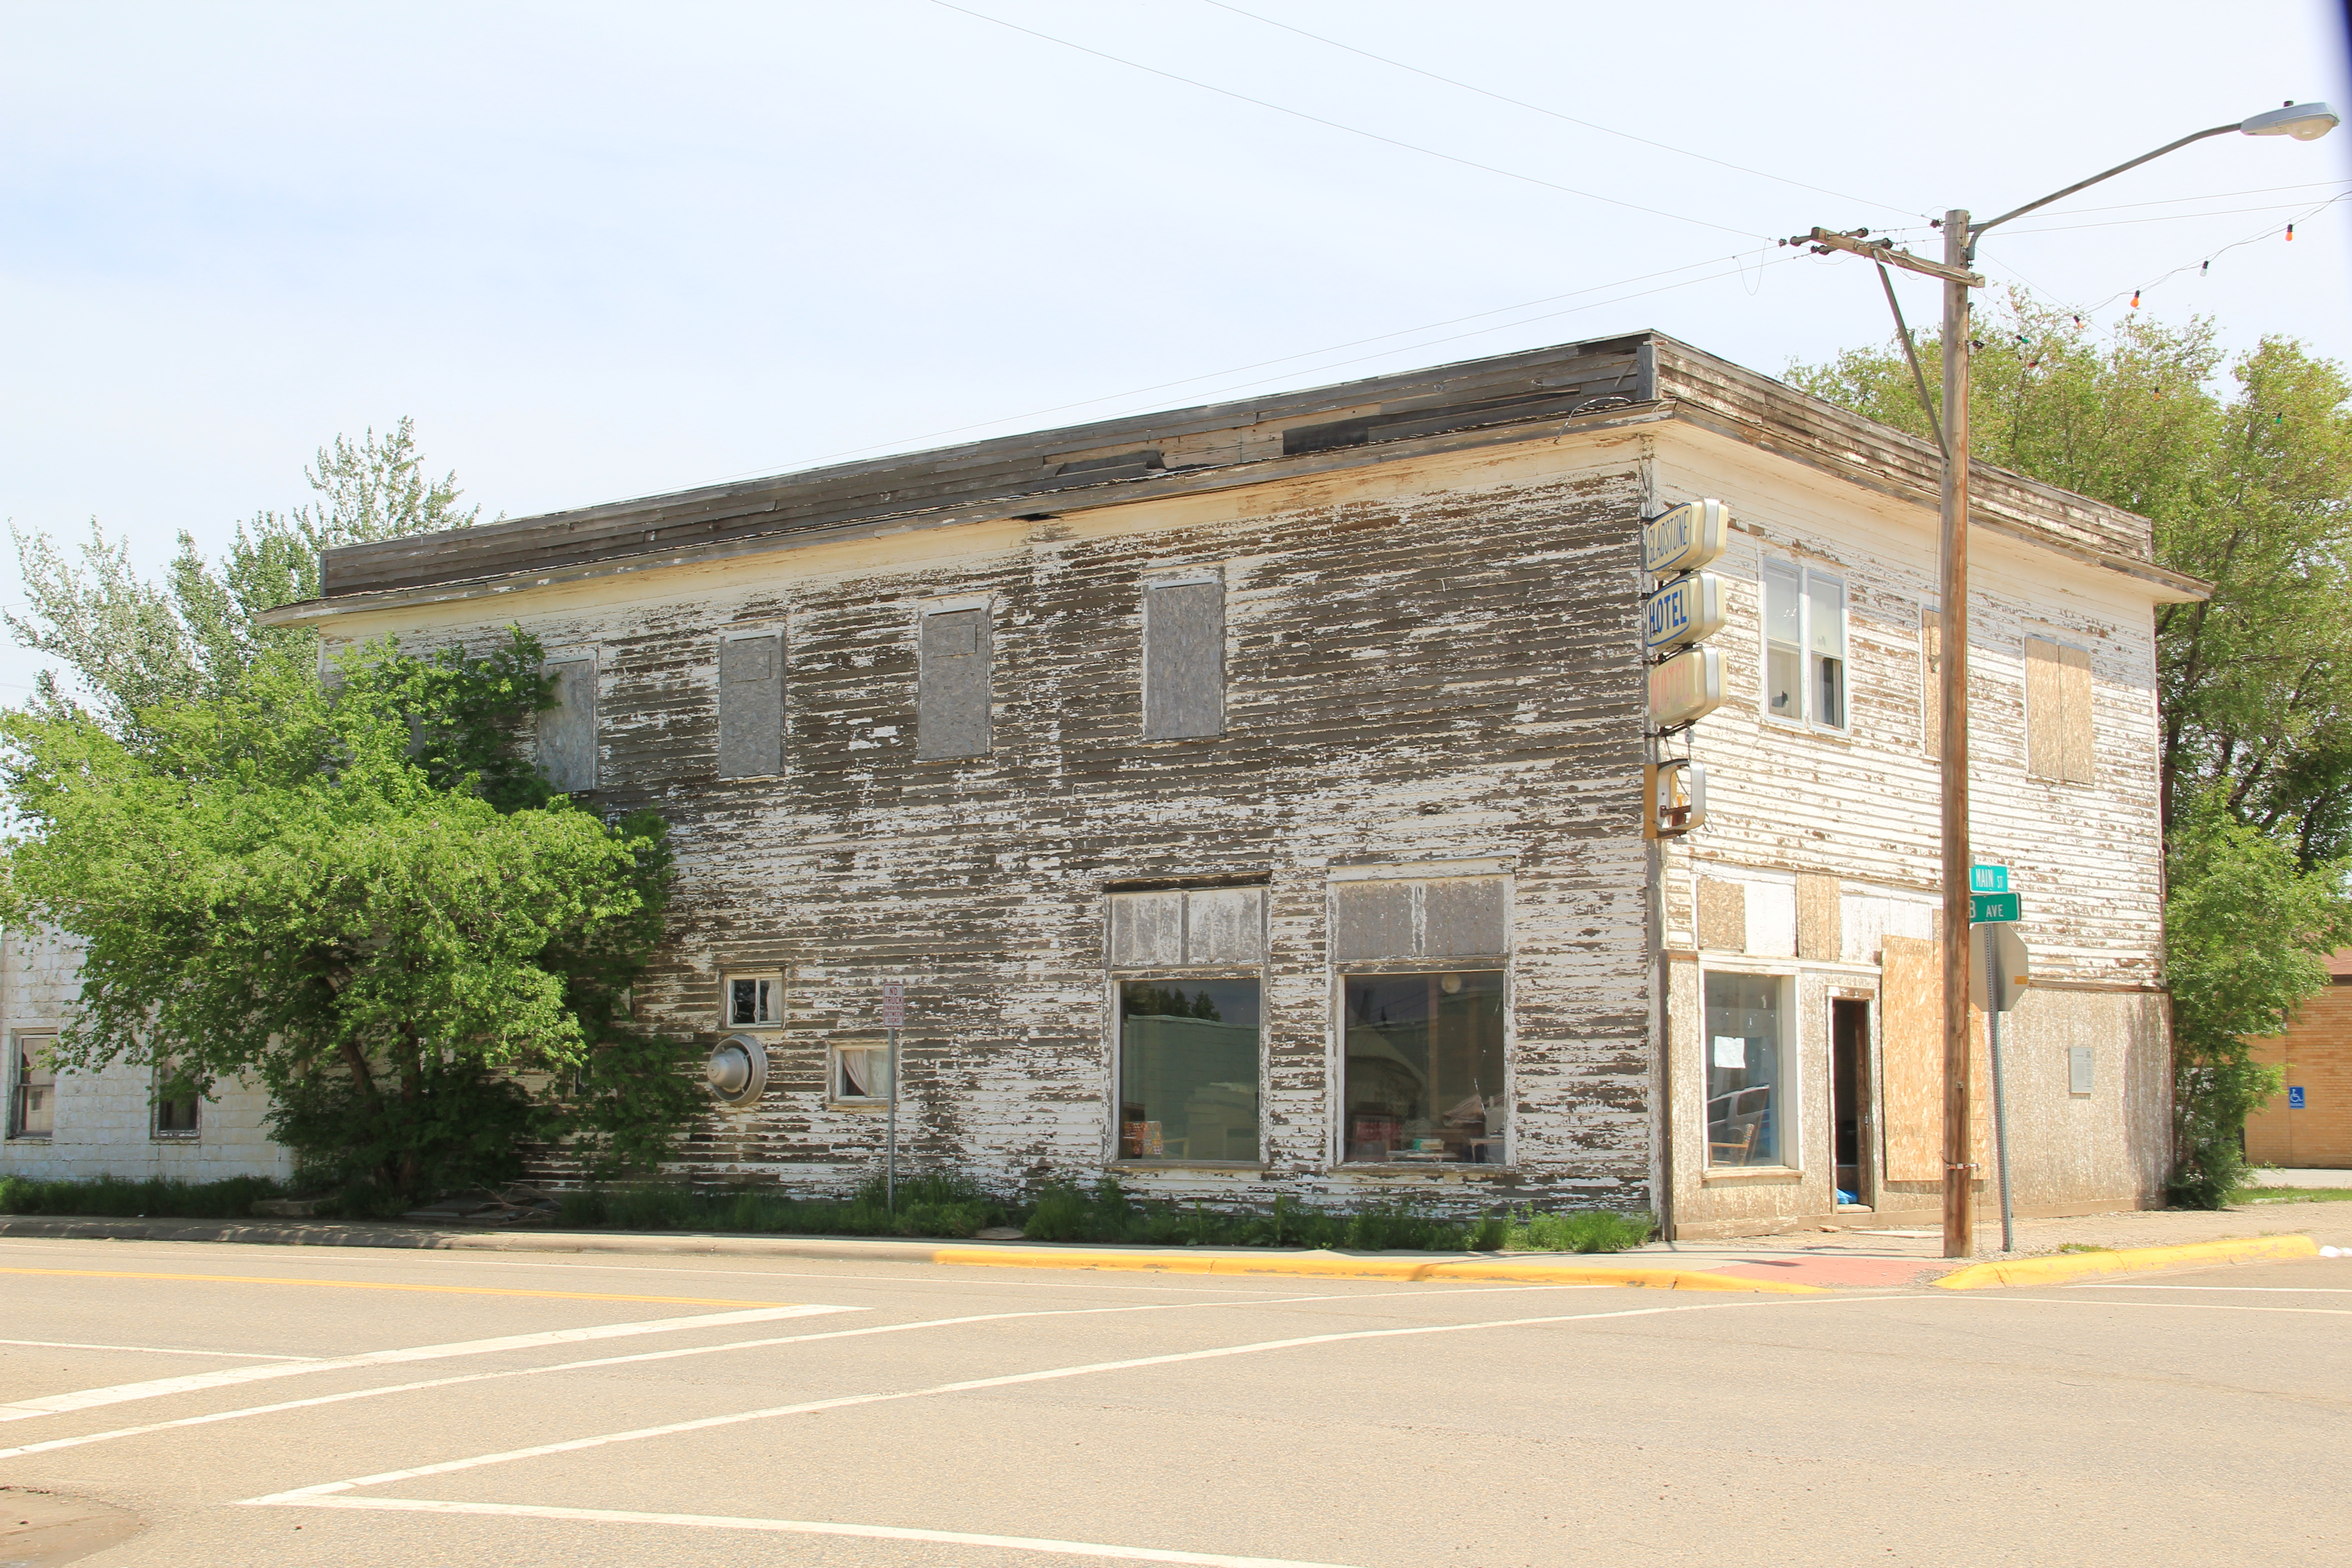 Montana mccone county circle - Montana Towns Had Long Ago Lost Their Homesteading Boom Era Hotels Or Boarding Houses Circle Still Had Theirs And One That Literally Creaked Of History As